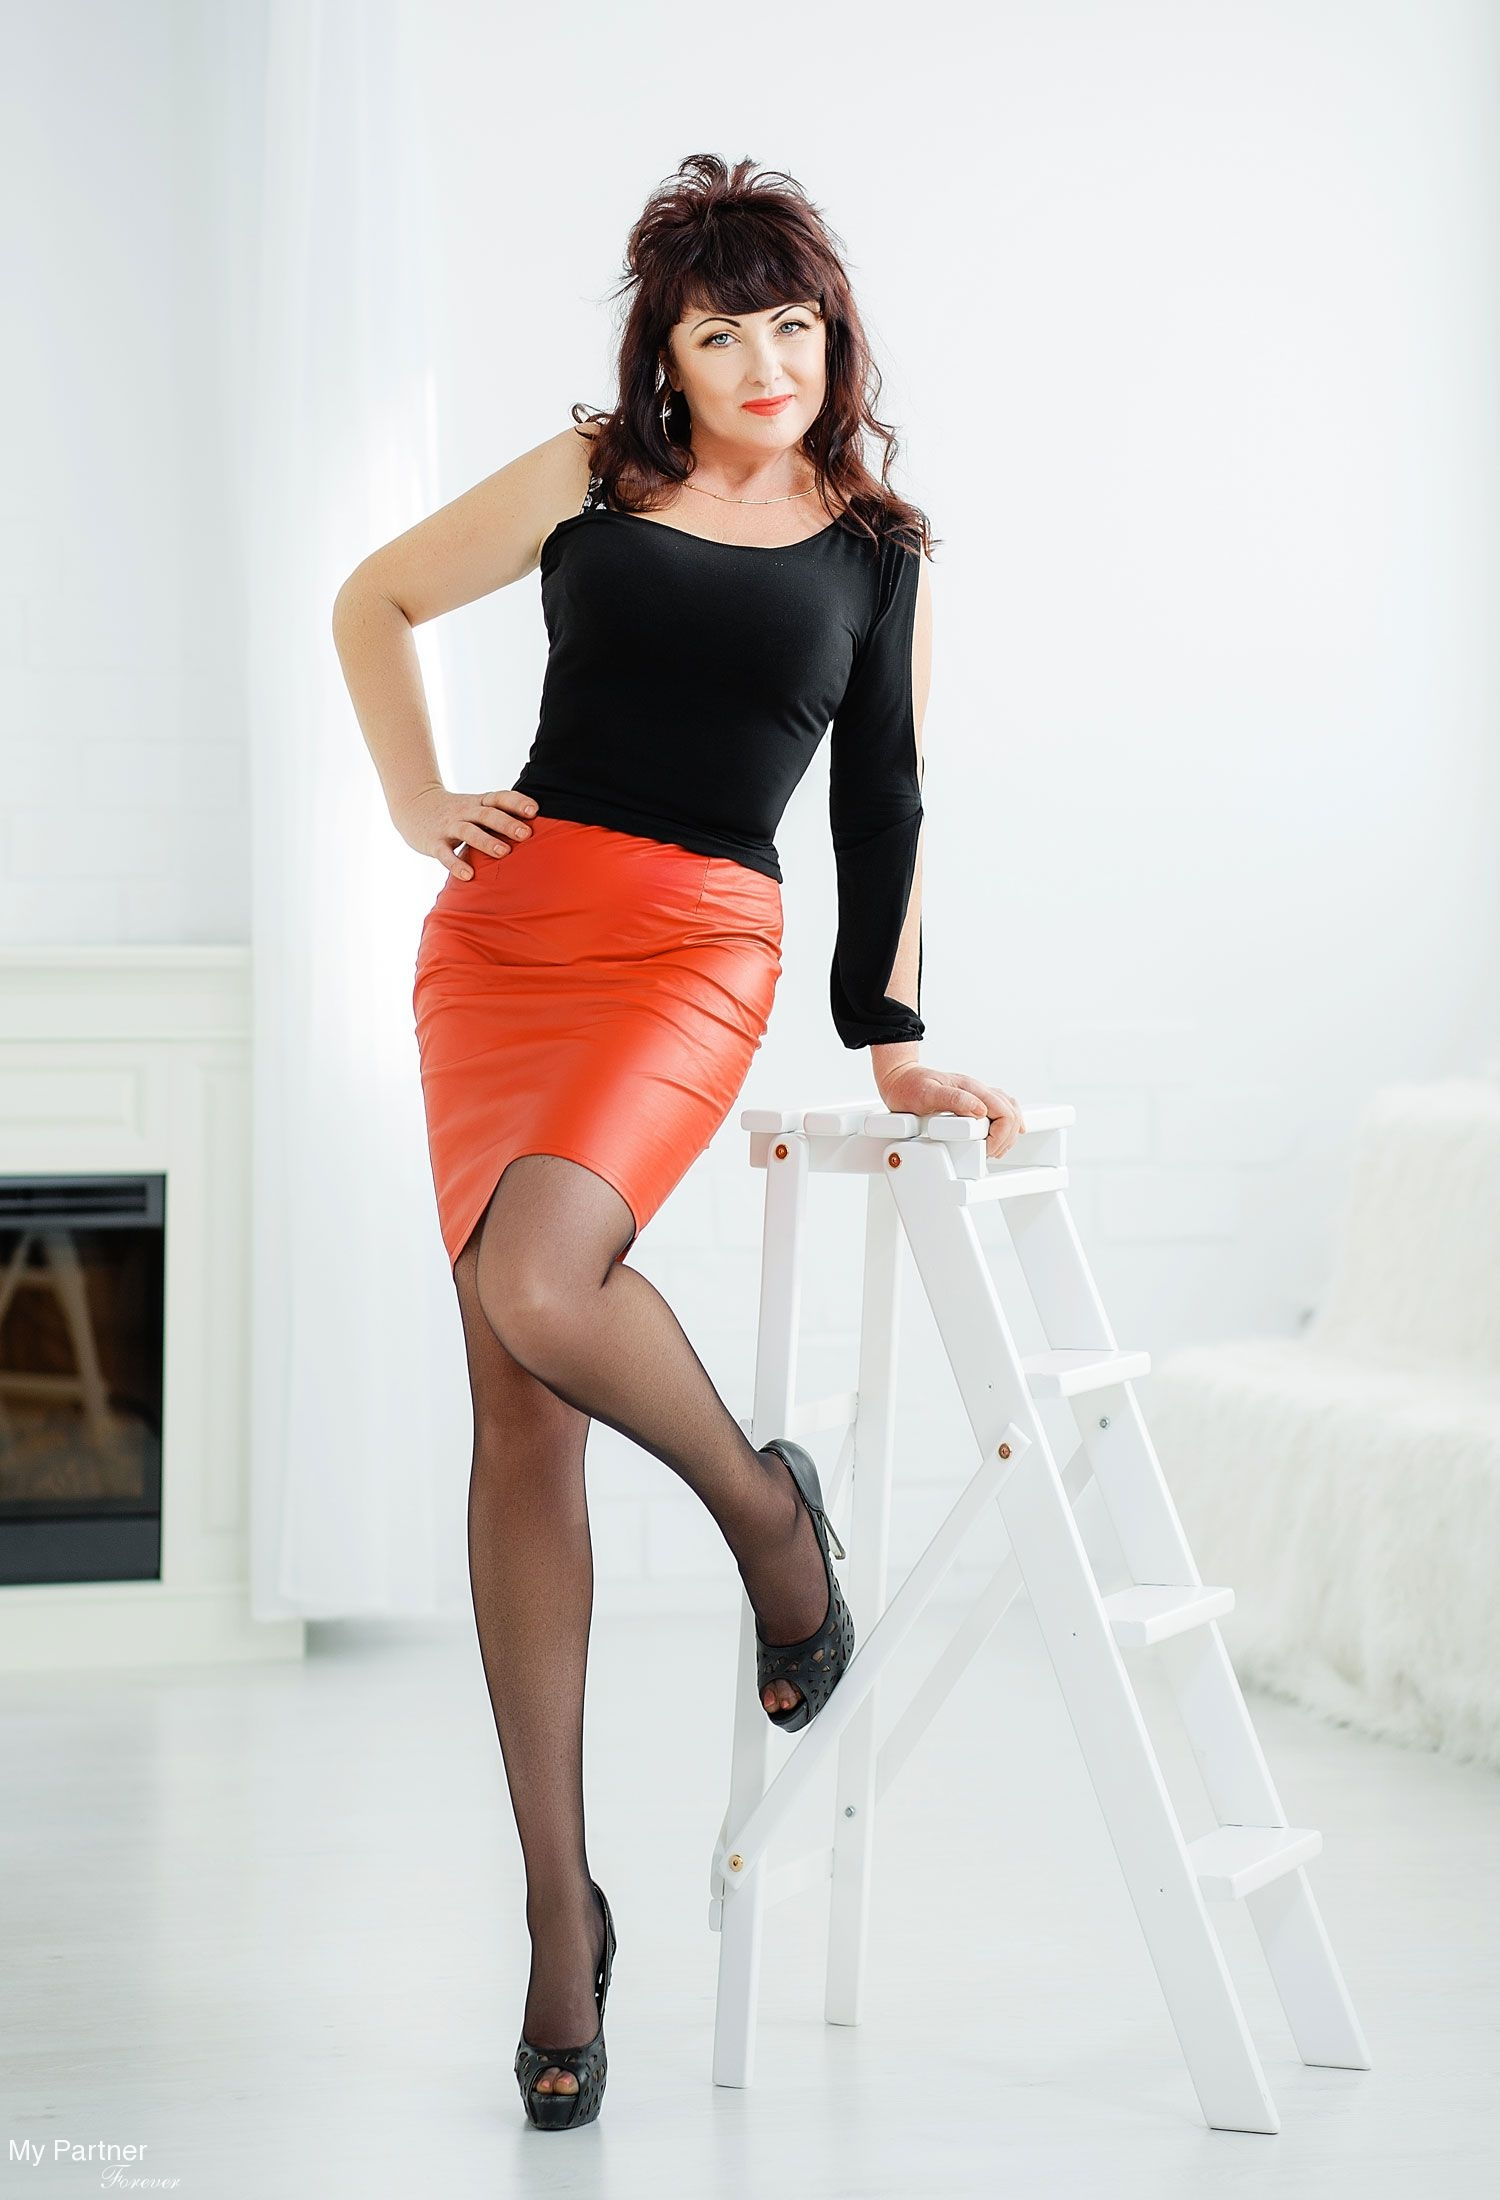 shiloh asian women dating site White and latino men, asian men receive fewer matches and messages from women on the dating site  the bias asian men encounter in dating bleeds.